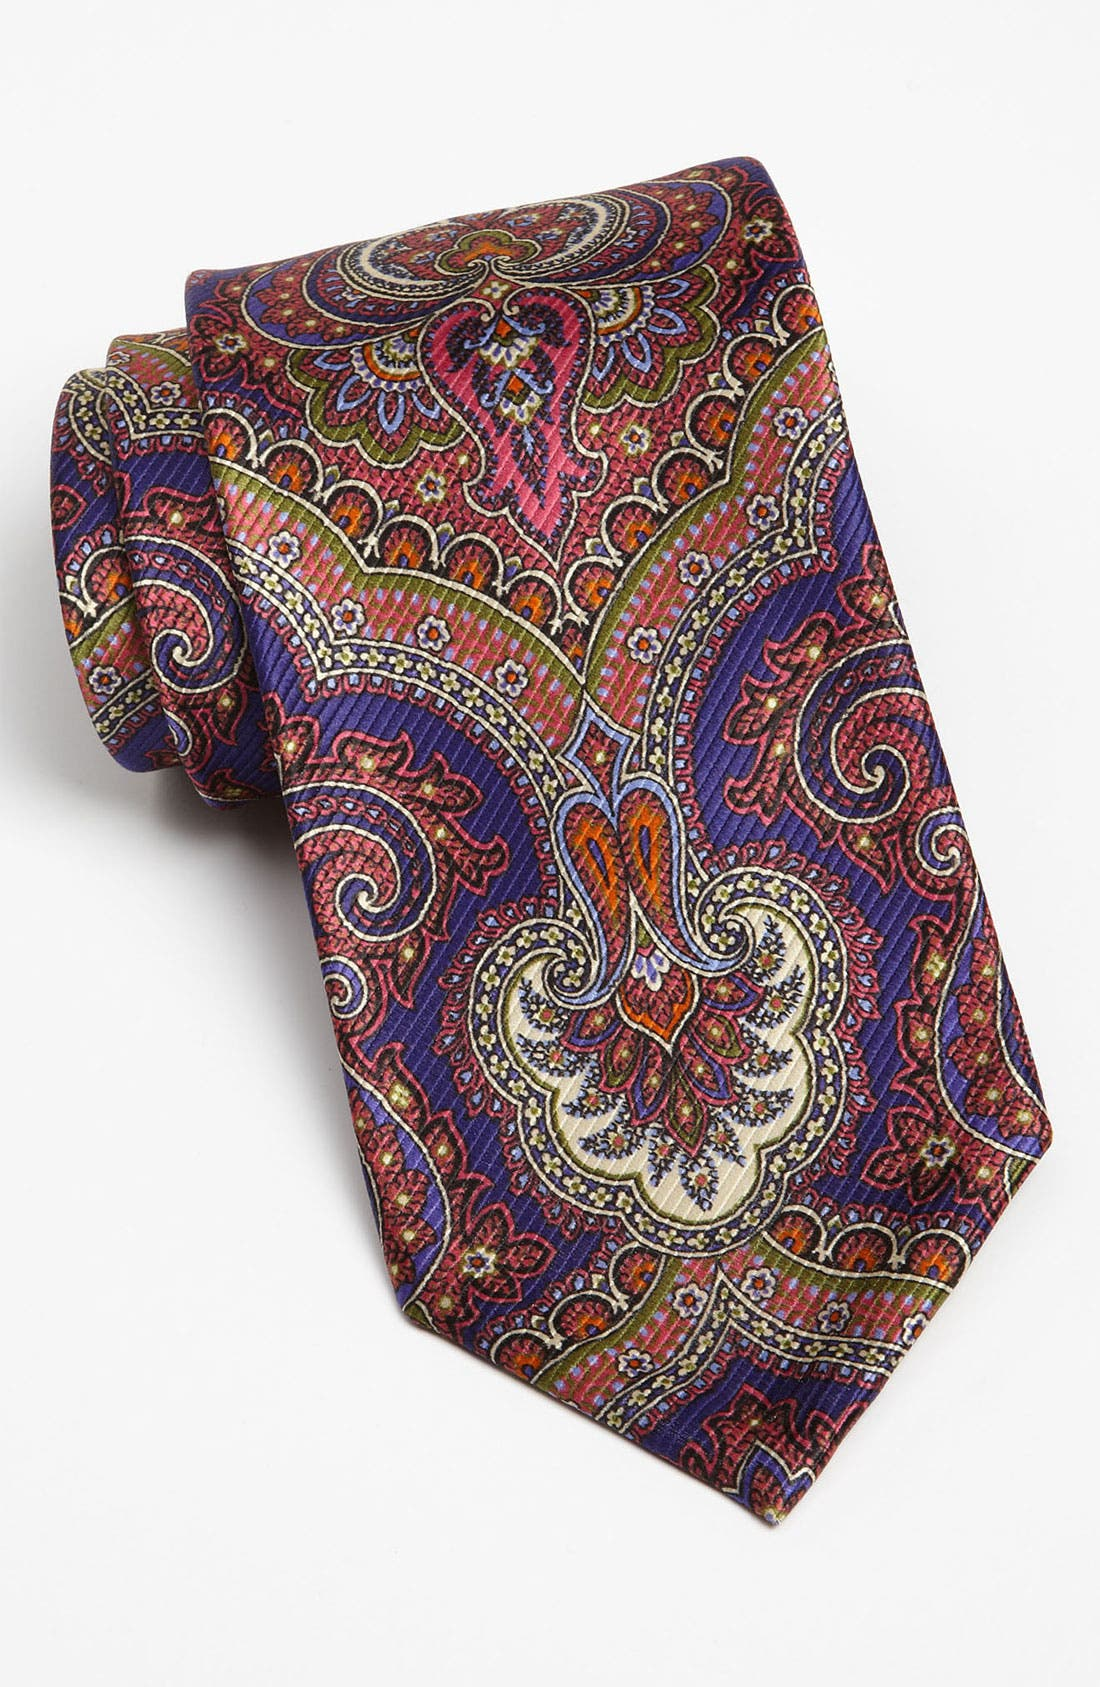 Main Image - Robert Talbott 'Sevenfold' Silk Tie (Limited Edition)